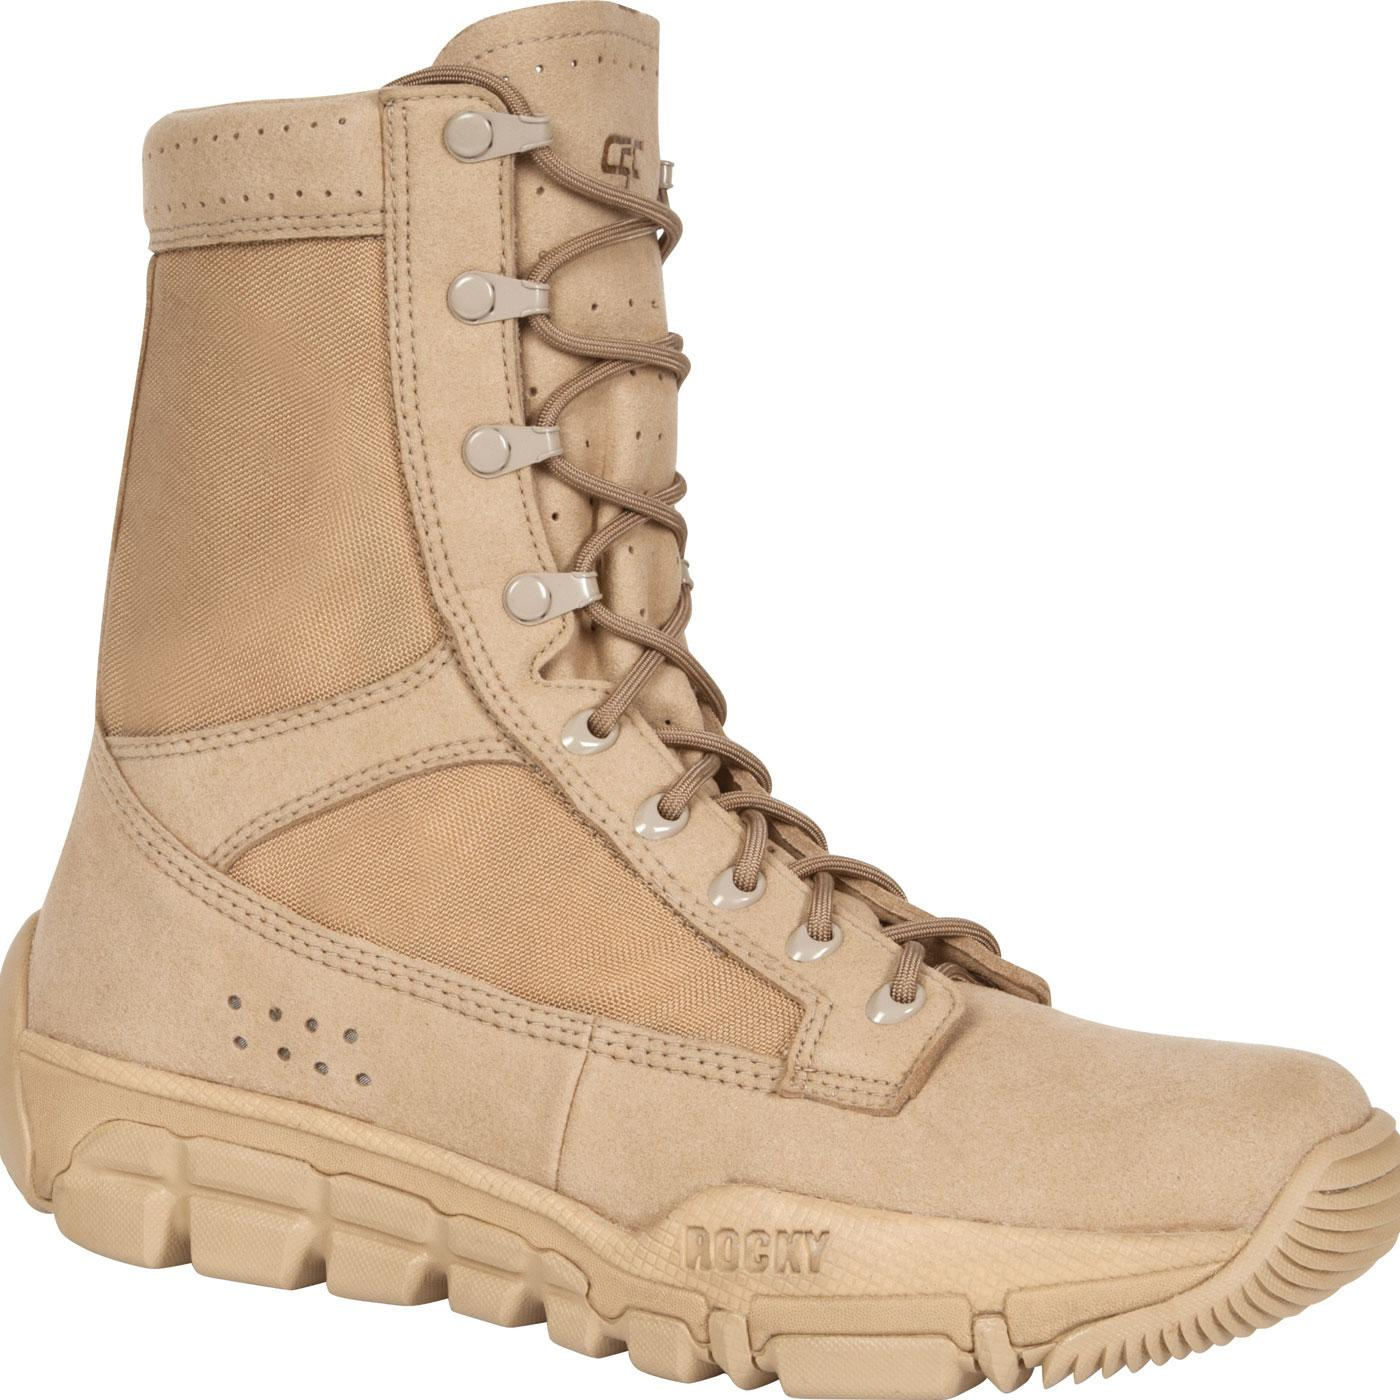 rocky boots rocky c5c commercial military boots, , large vmwpysm